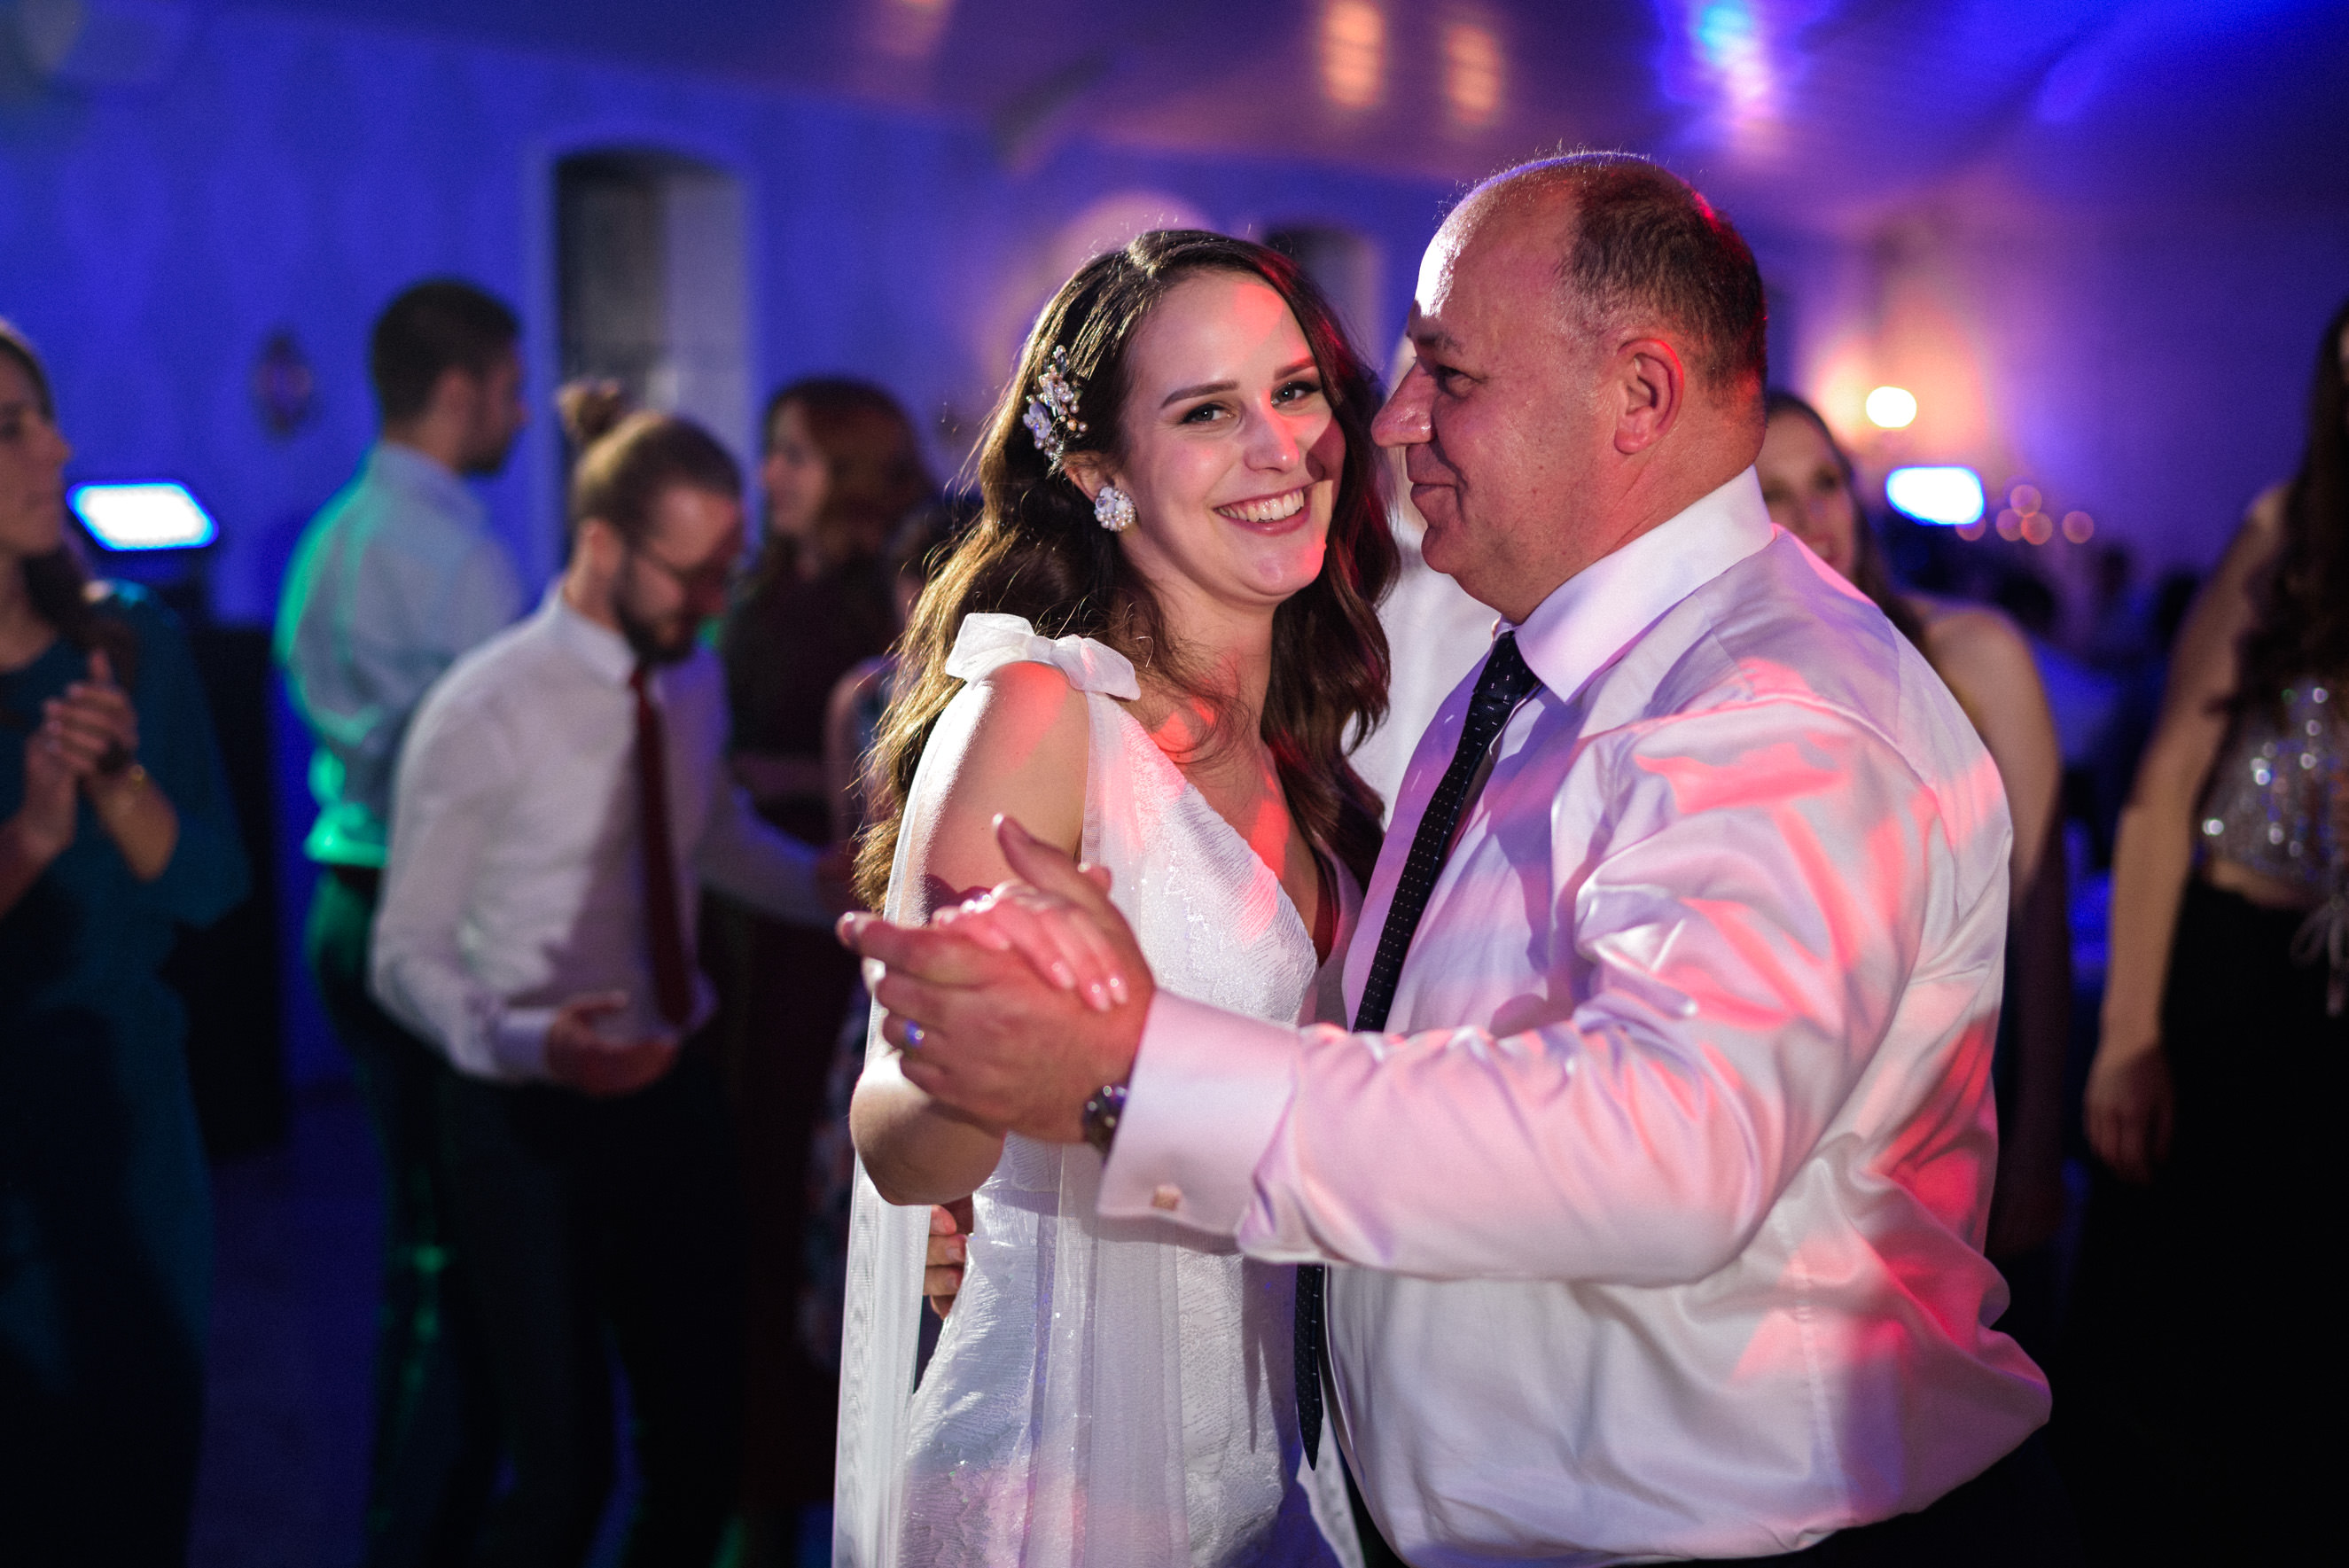 bride and her father dancing to the music